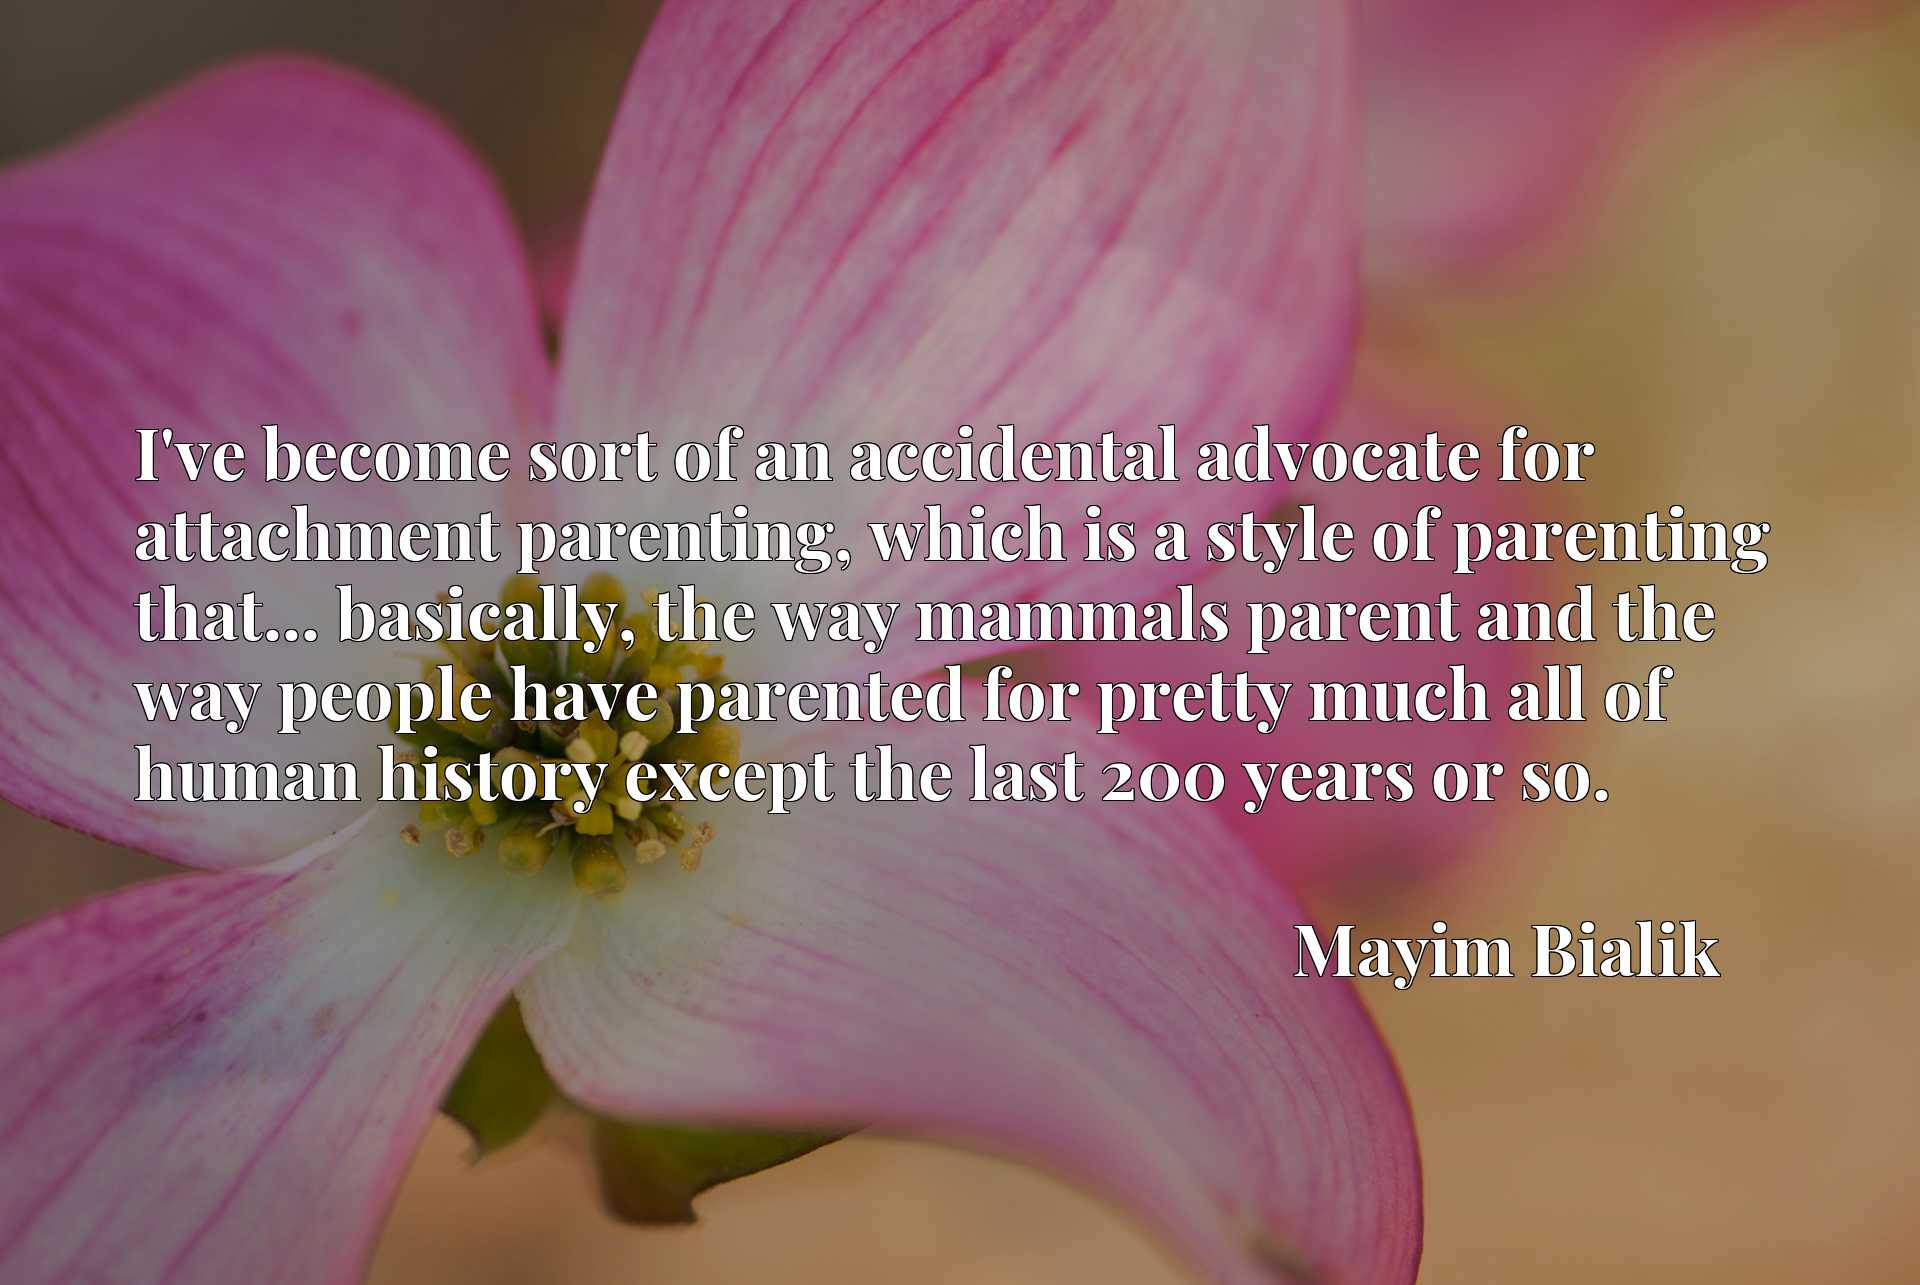 I've become sort of an accidental advocate for attachment parenting, which is a style of parenting that... basically, the way mammals parent and the way people have parented for pretty much all of human history except the last 200 years or so.